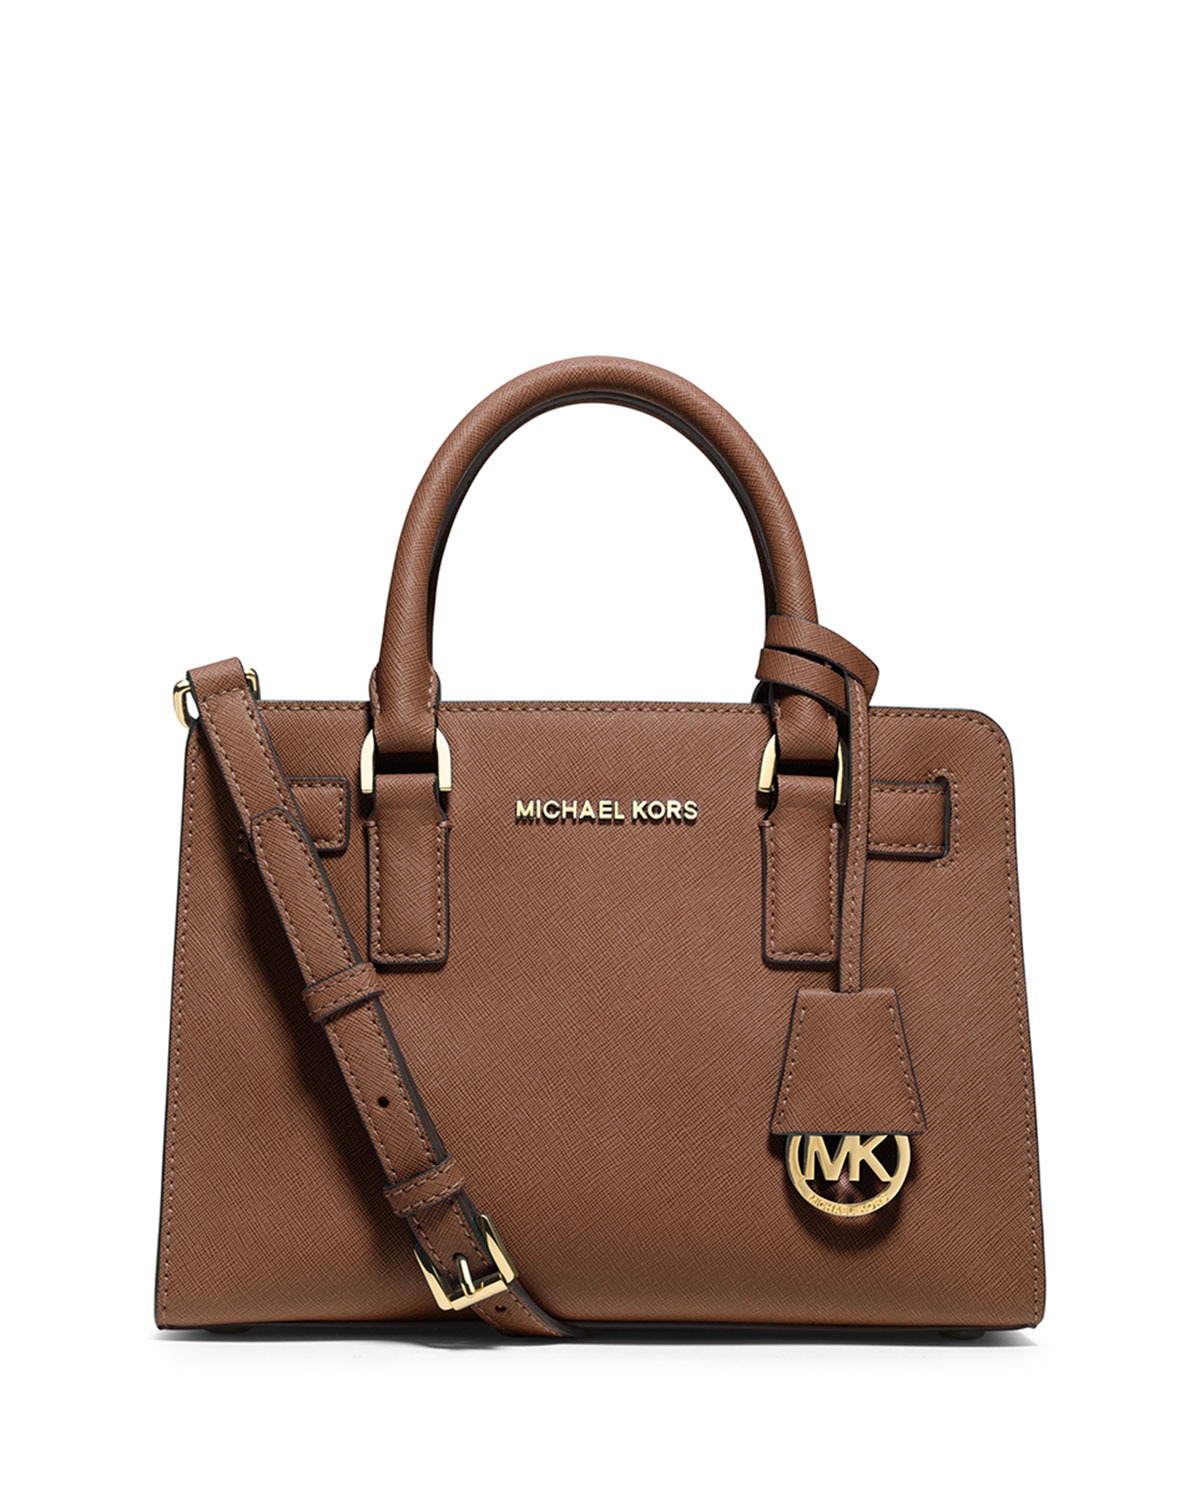 0af19a71602e MICHAEL Michael Kors Dillon Small Leather Satchel Bag in Brown - Lyst